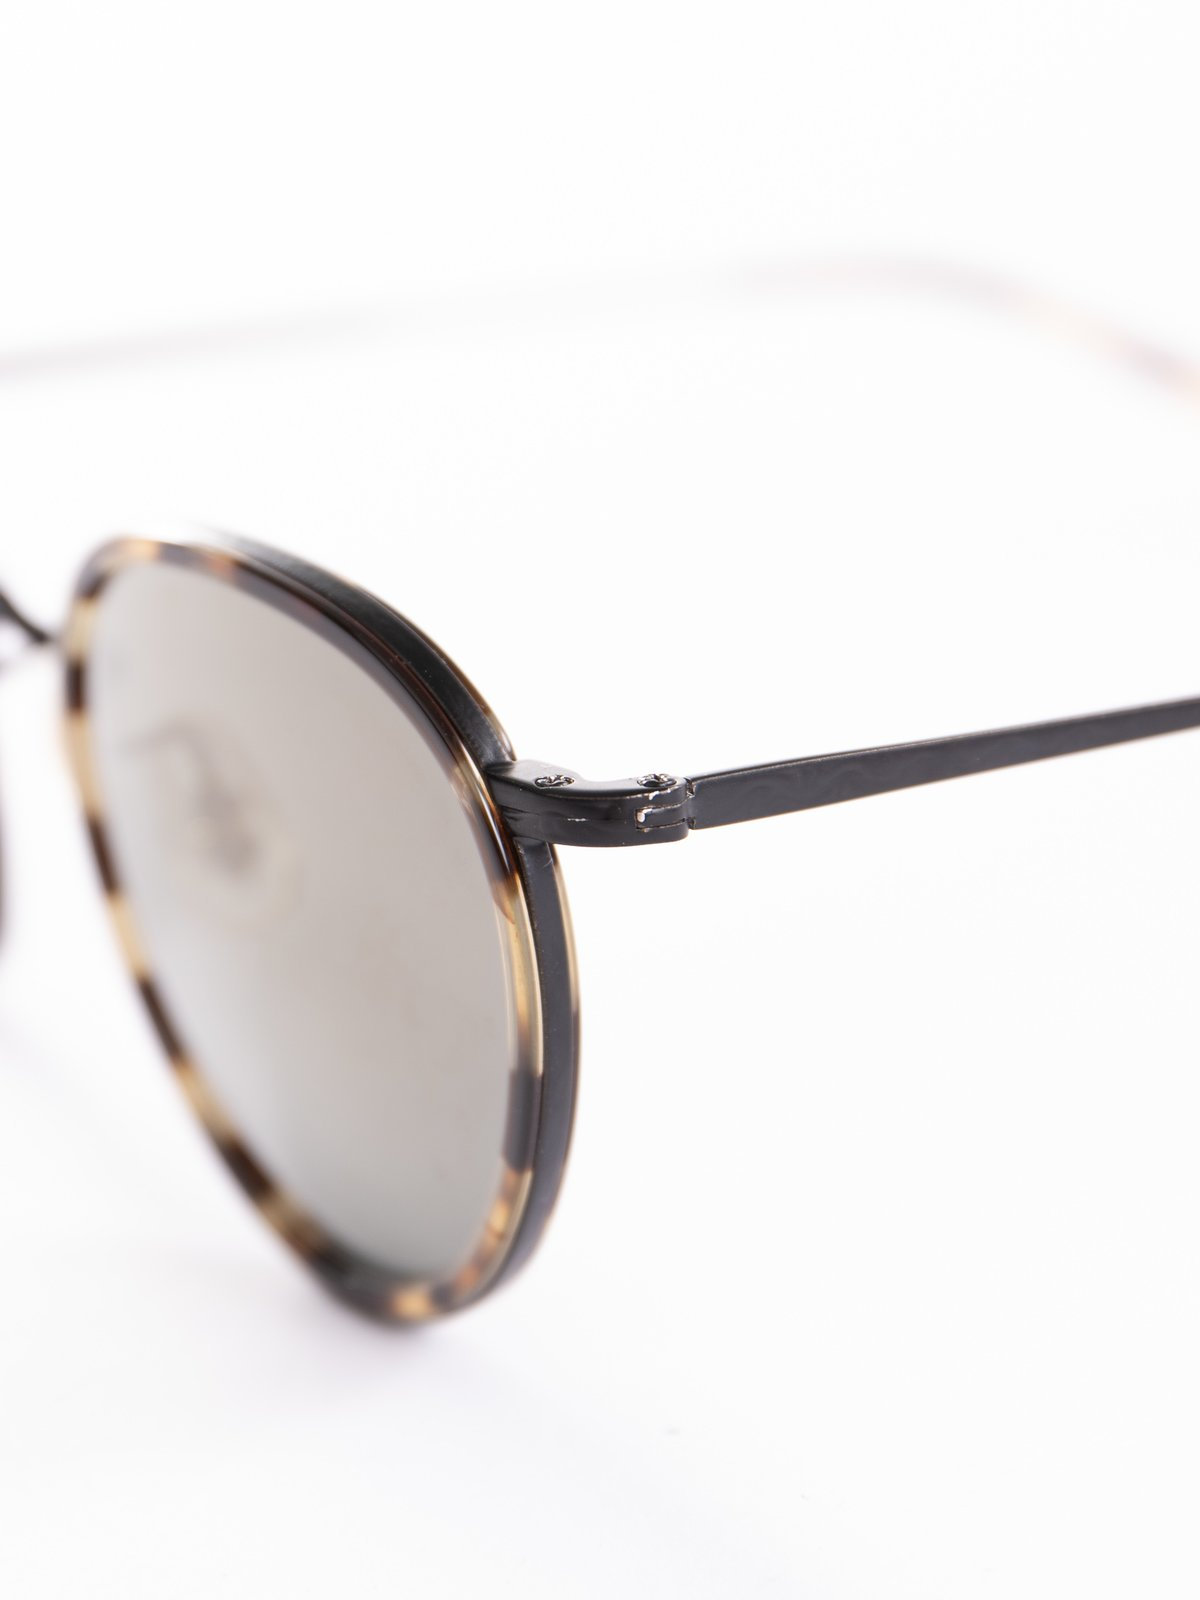 Hickory Tortoise–Matte Black/Dark Grey Mirror Gold MP–2 Sunglasses - Image 3